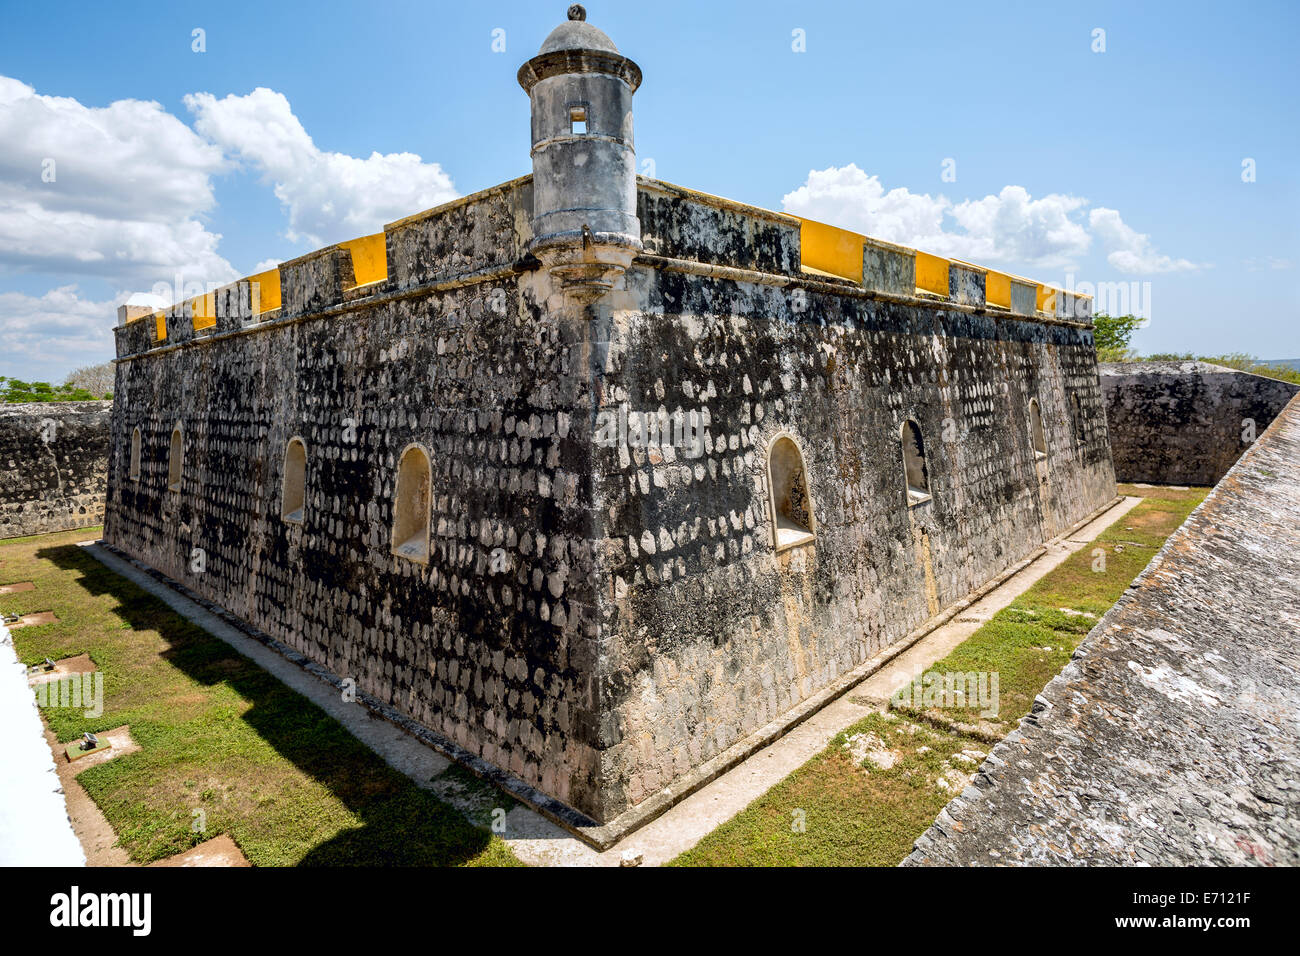 old Spanish fort built of stone surrounded by ravine, Campeche Mexico Stock Photo